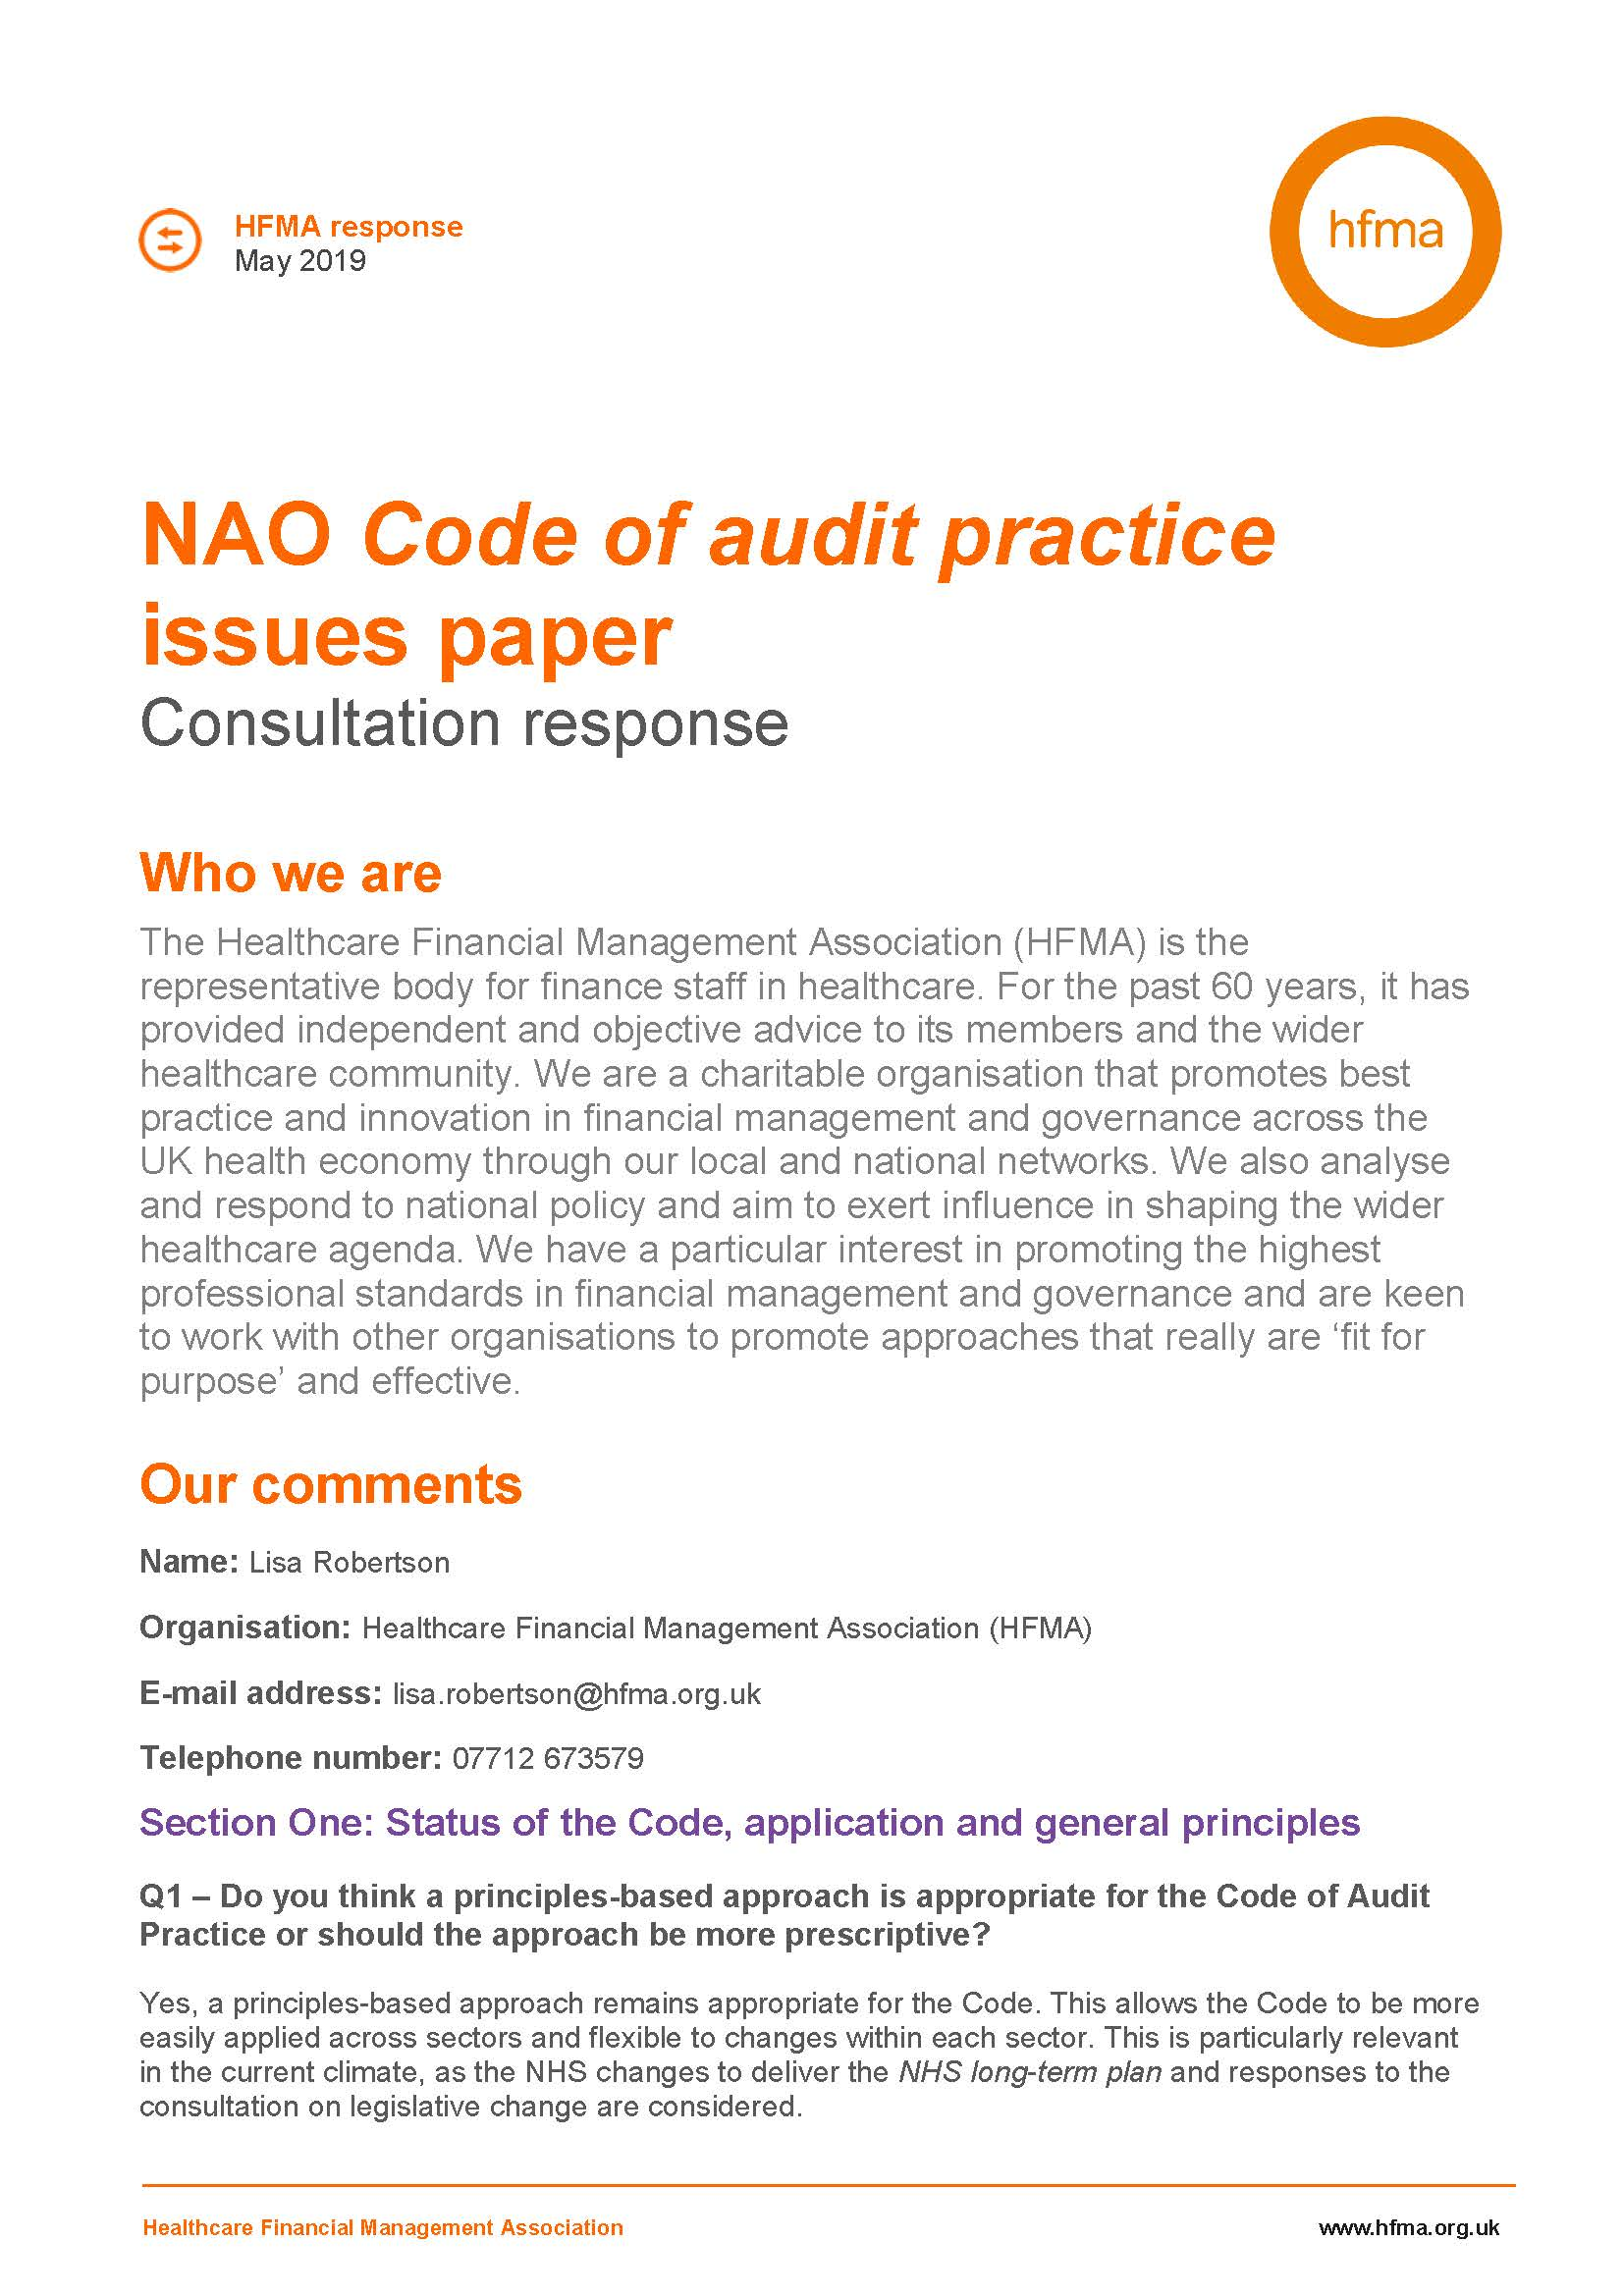 HFMA response to the NAO code of audit practice issues paper